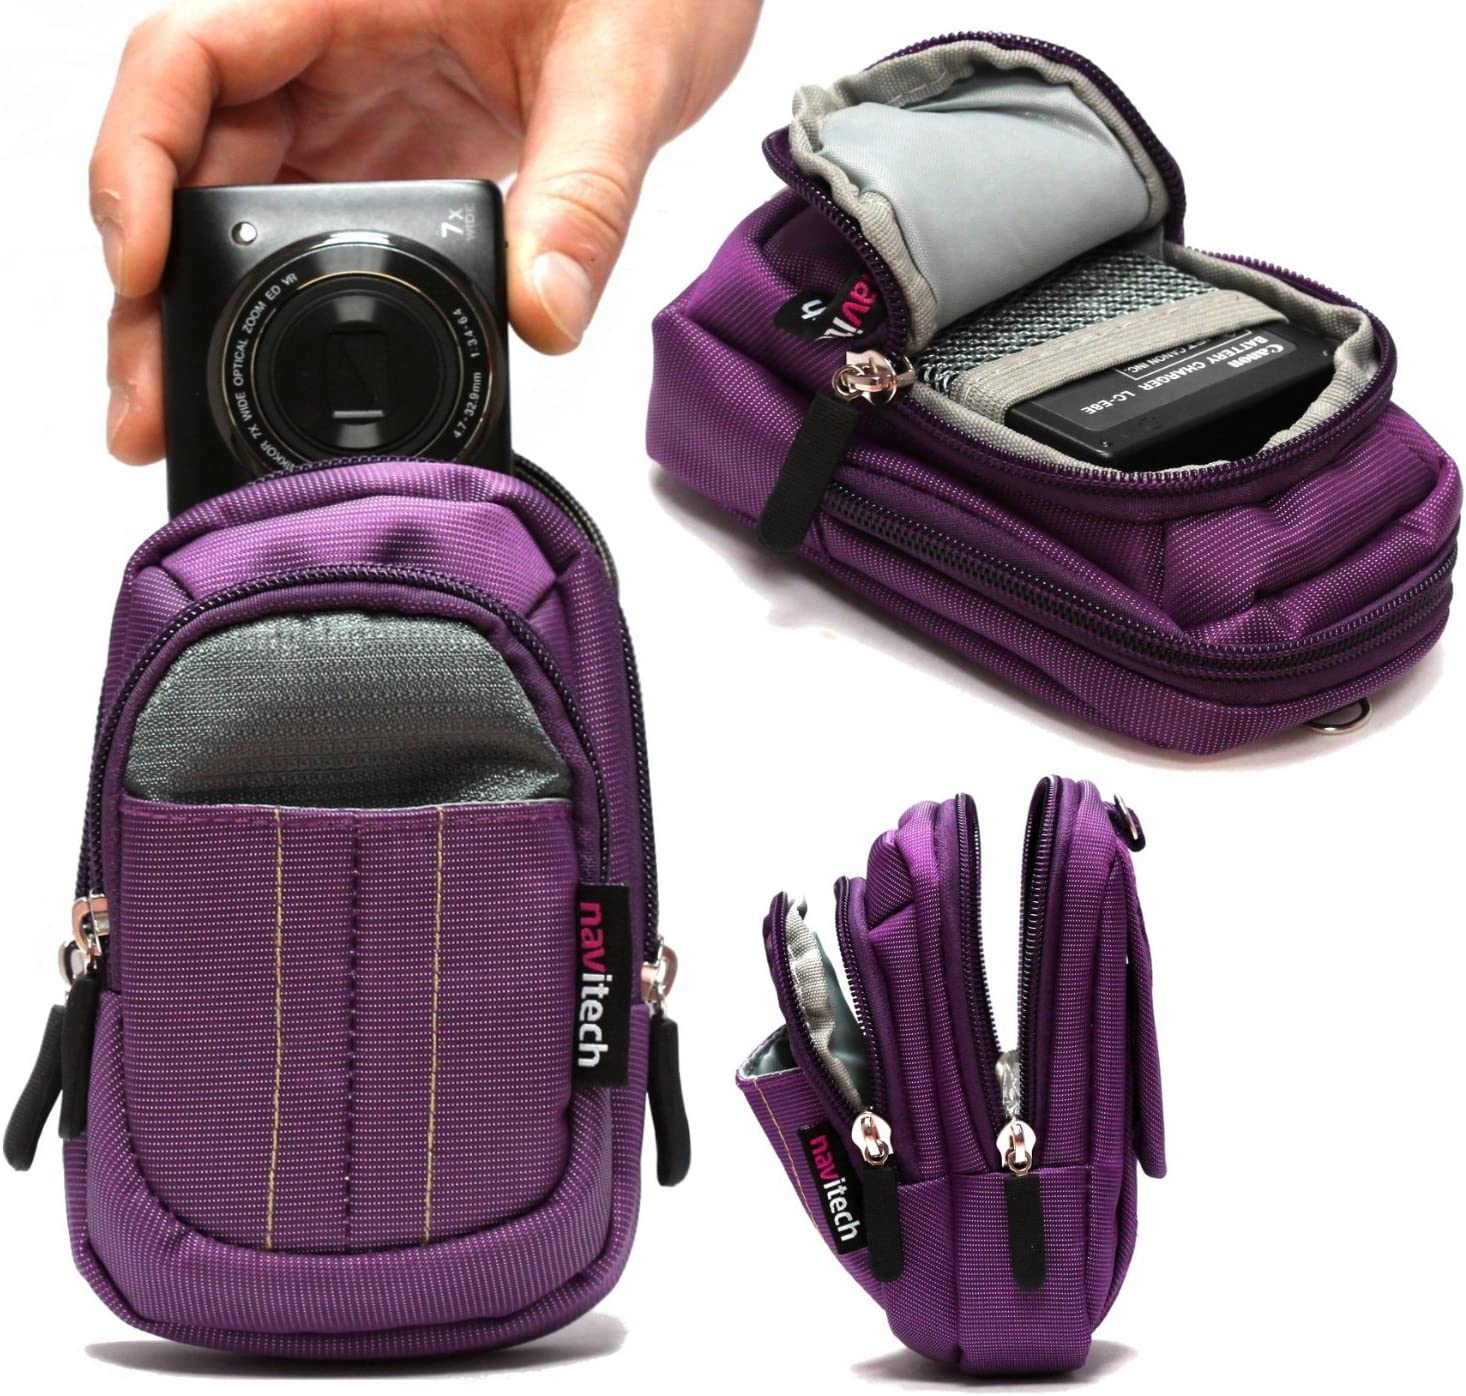 Navitech Purple Digital Camera Case Bag Compatible with The Nikon COOLPIX A900